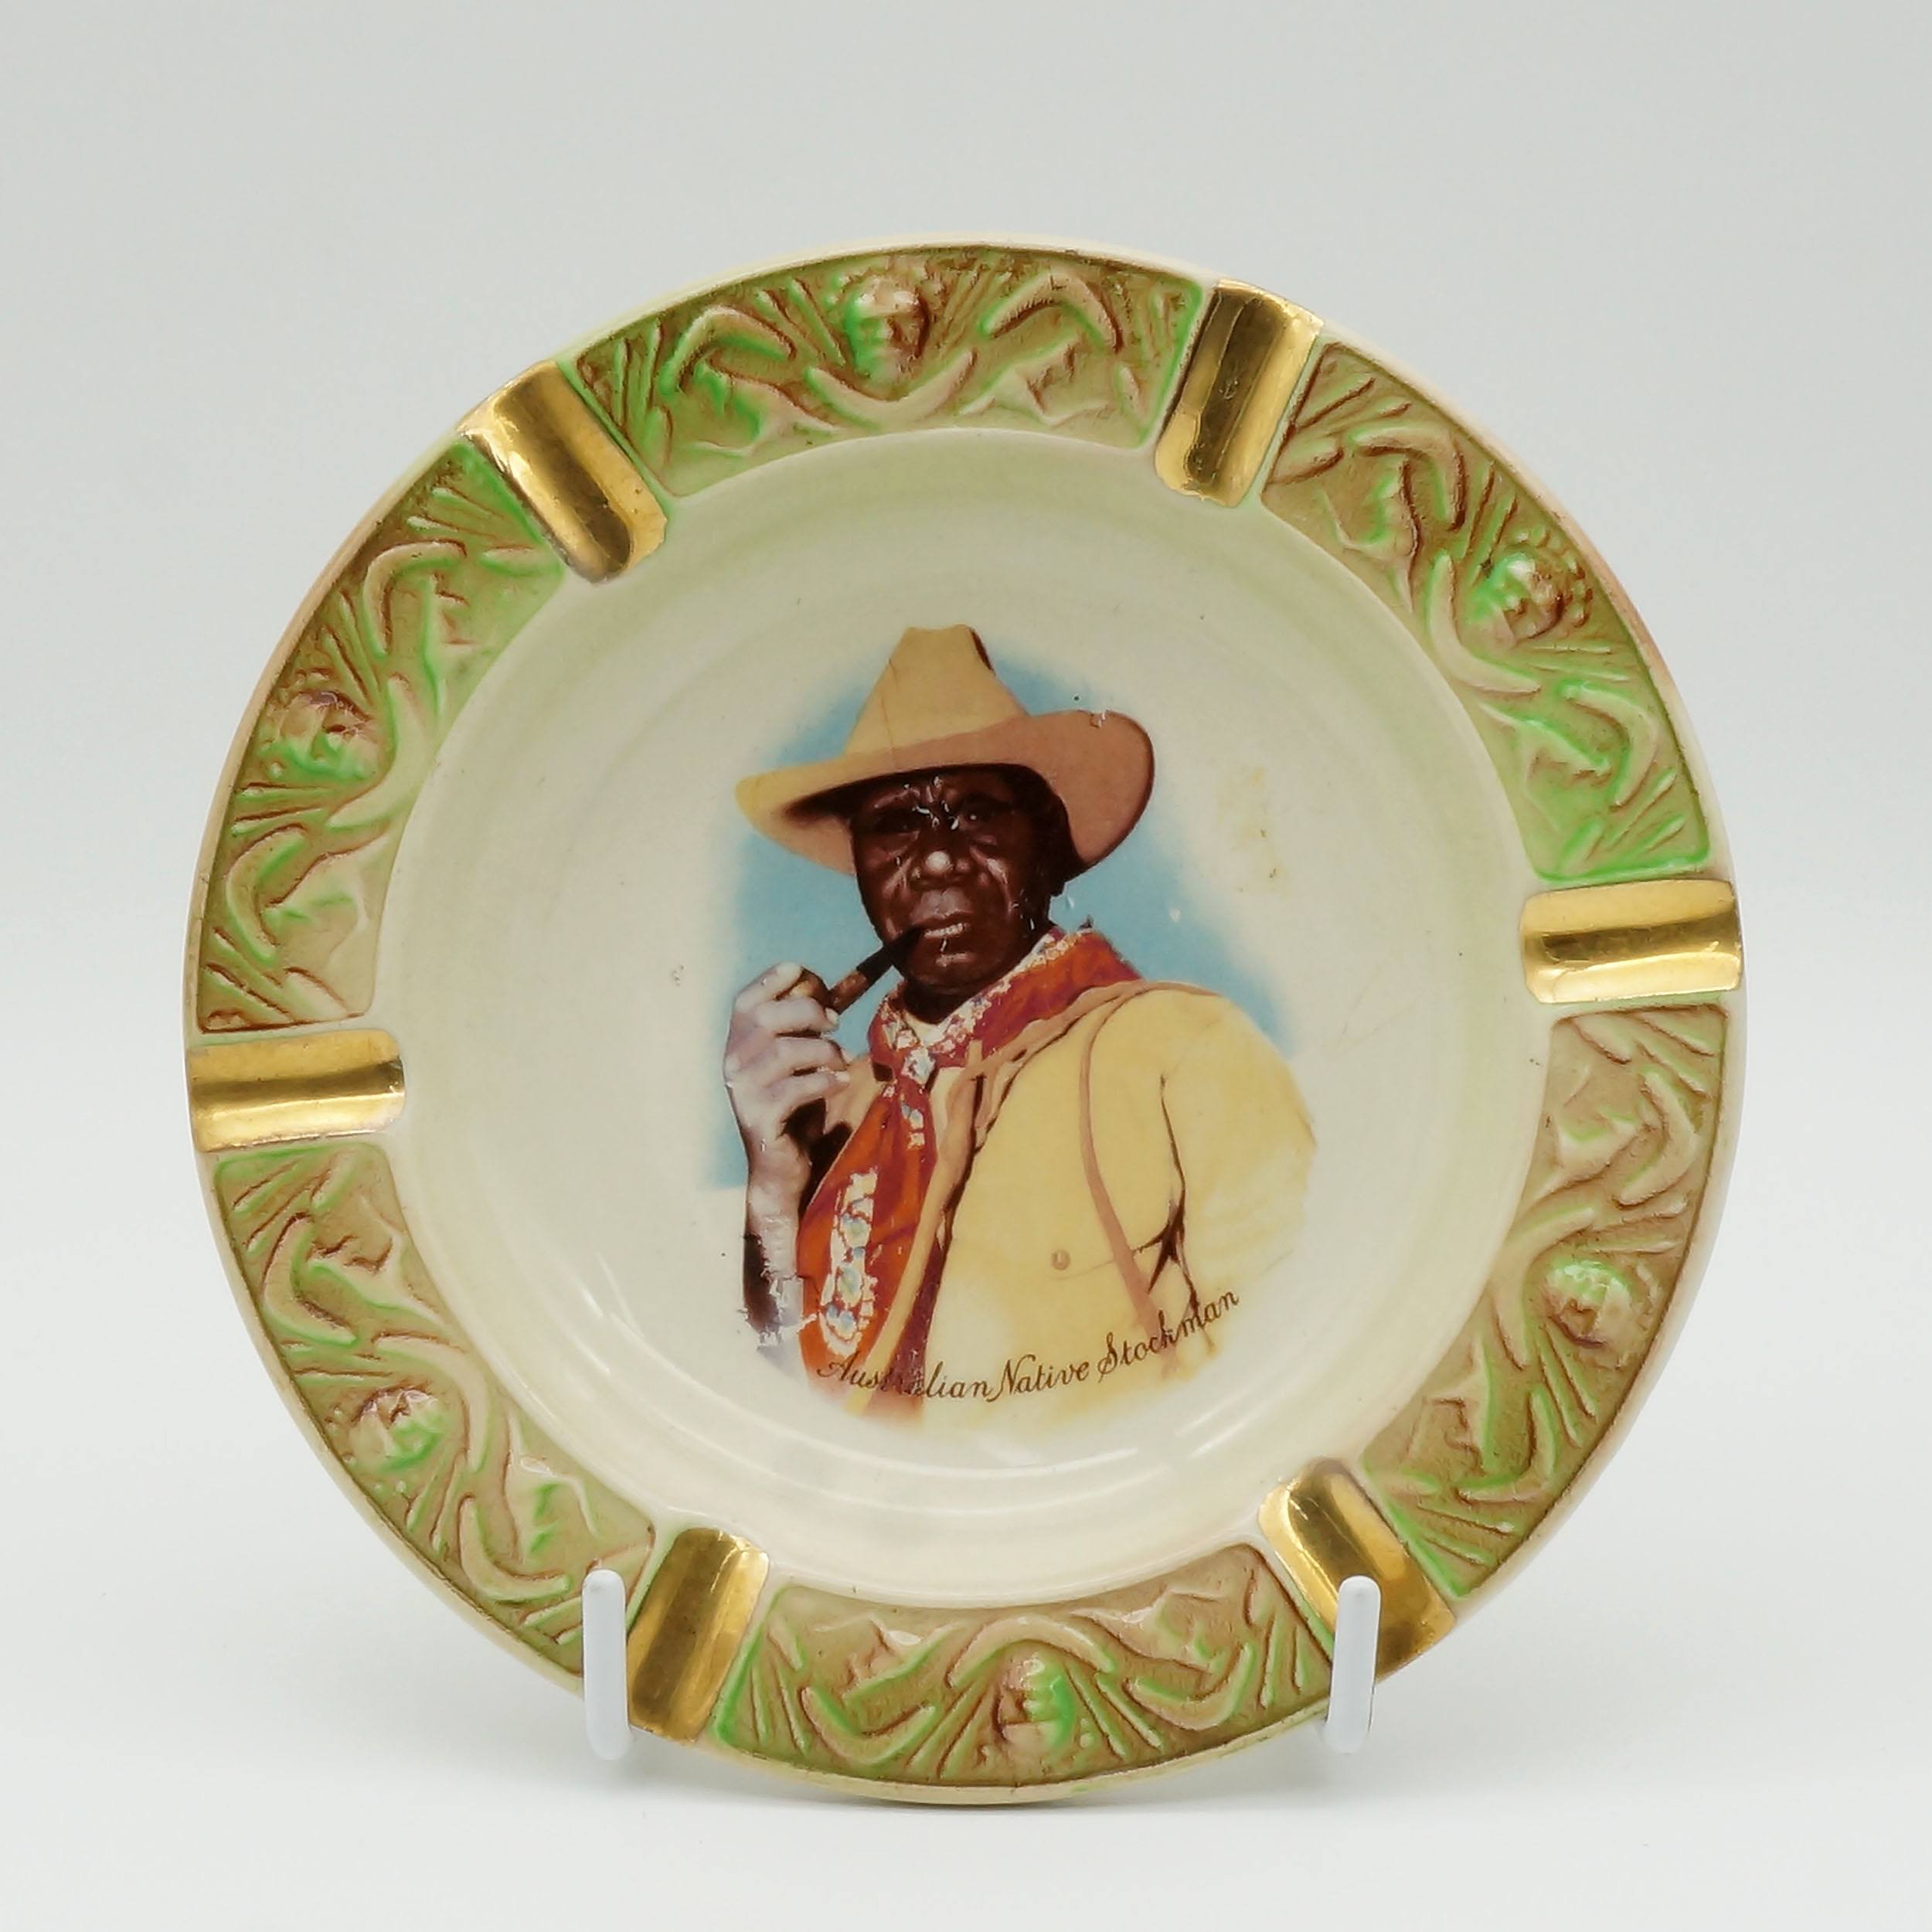 'Australian Wembley Ware Albert Namatjira Ashtray'